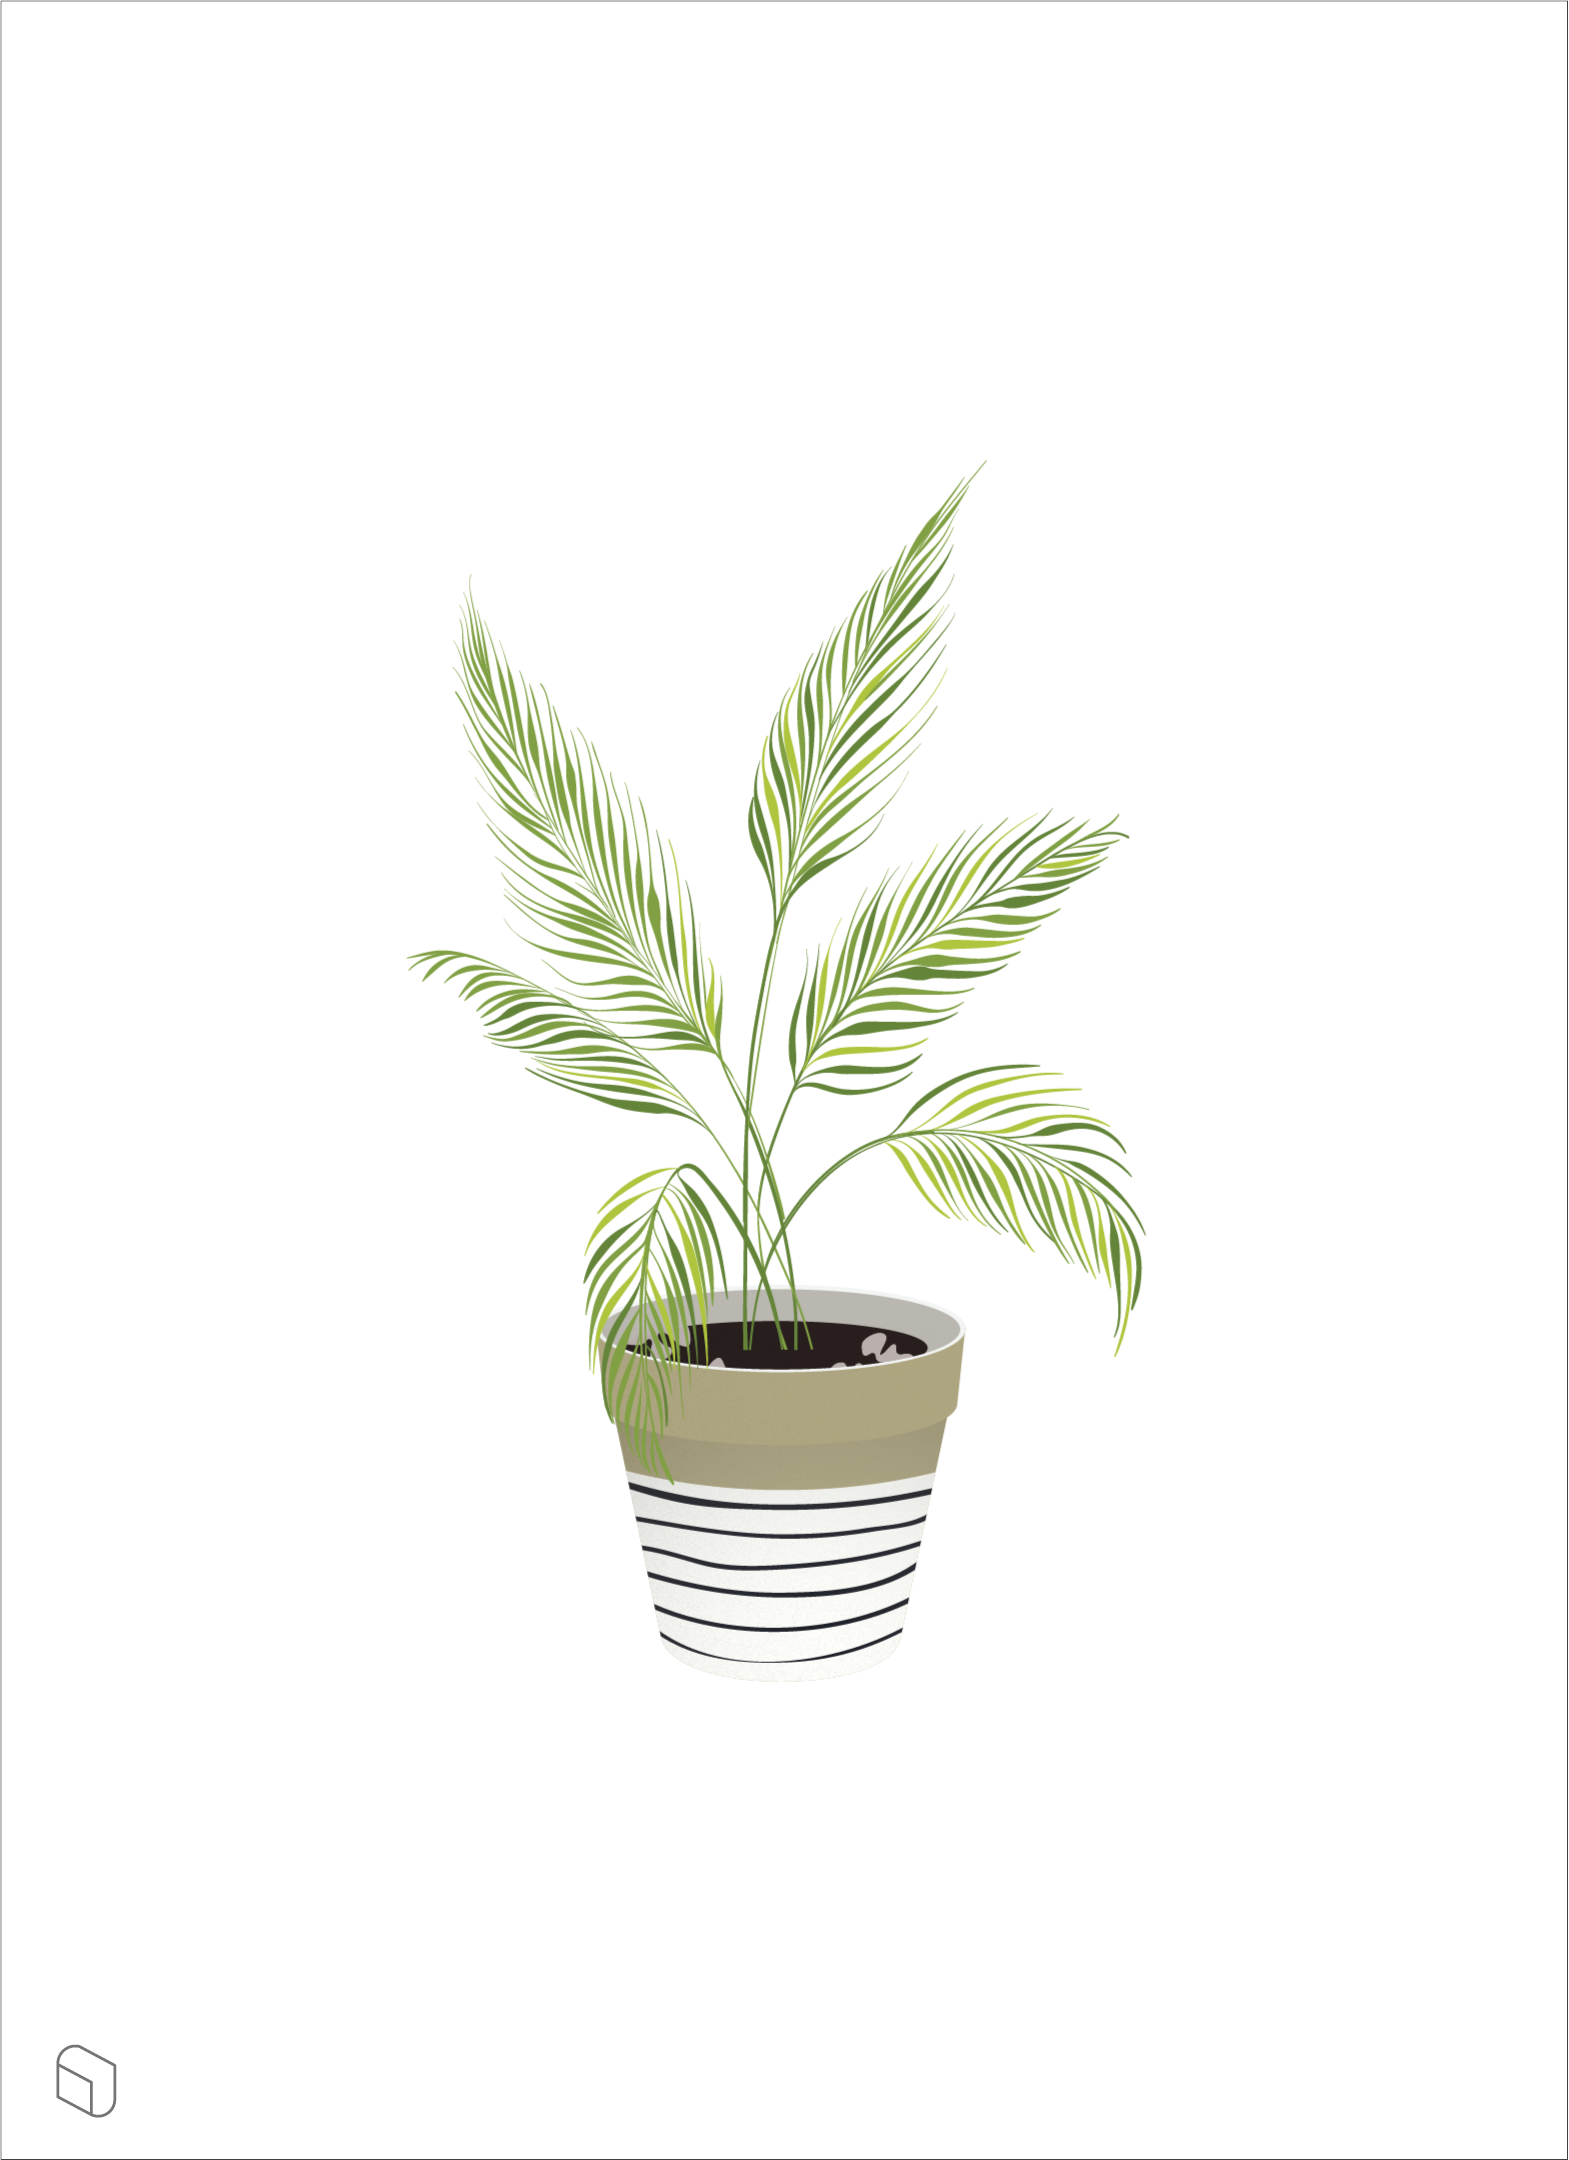 Flat vector indoor plants illustrations for architecture  amp interior design ai pdf cutout also pin by toffu on trees plant illustration rh pinterest